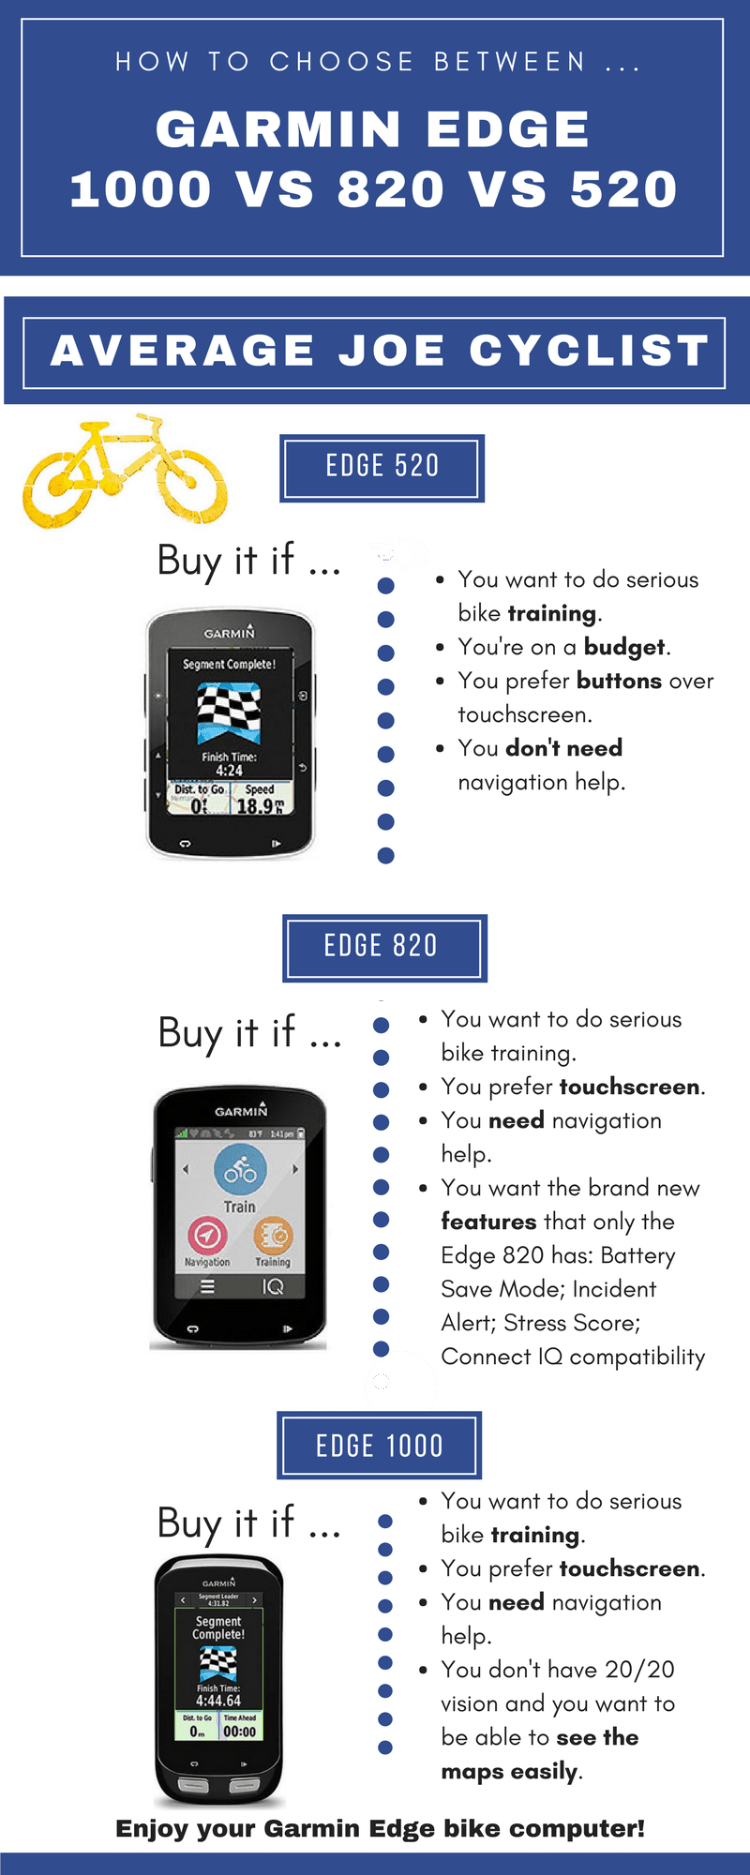 This infographic sums up very briefly which Garmin Edge might be best for you. Read on for many more details! Garmin Edge 1000 vs 820 vs 520